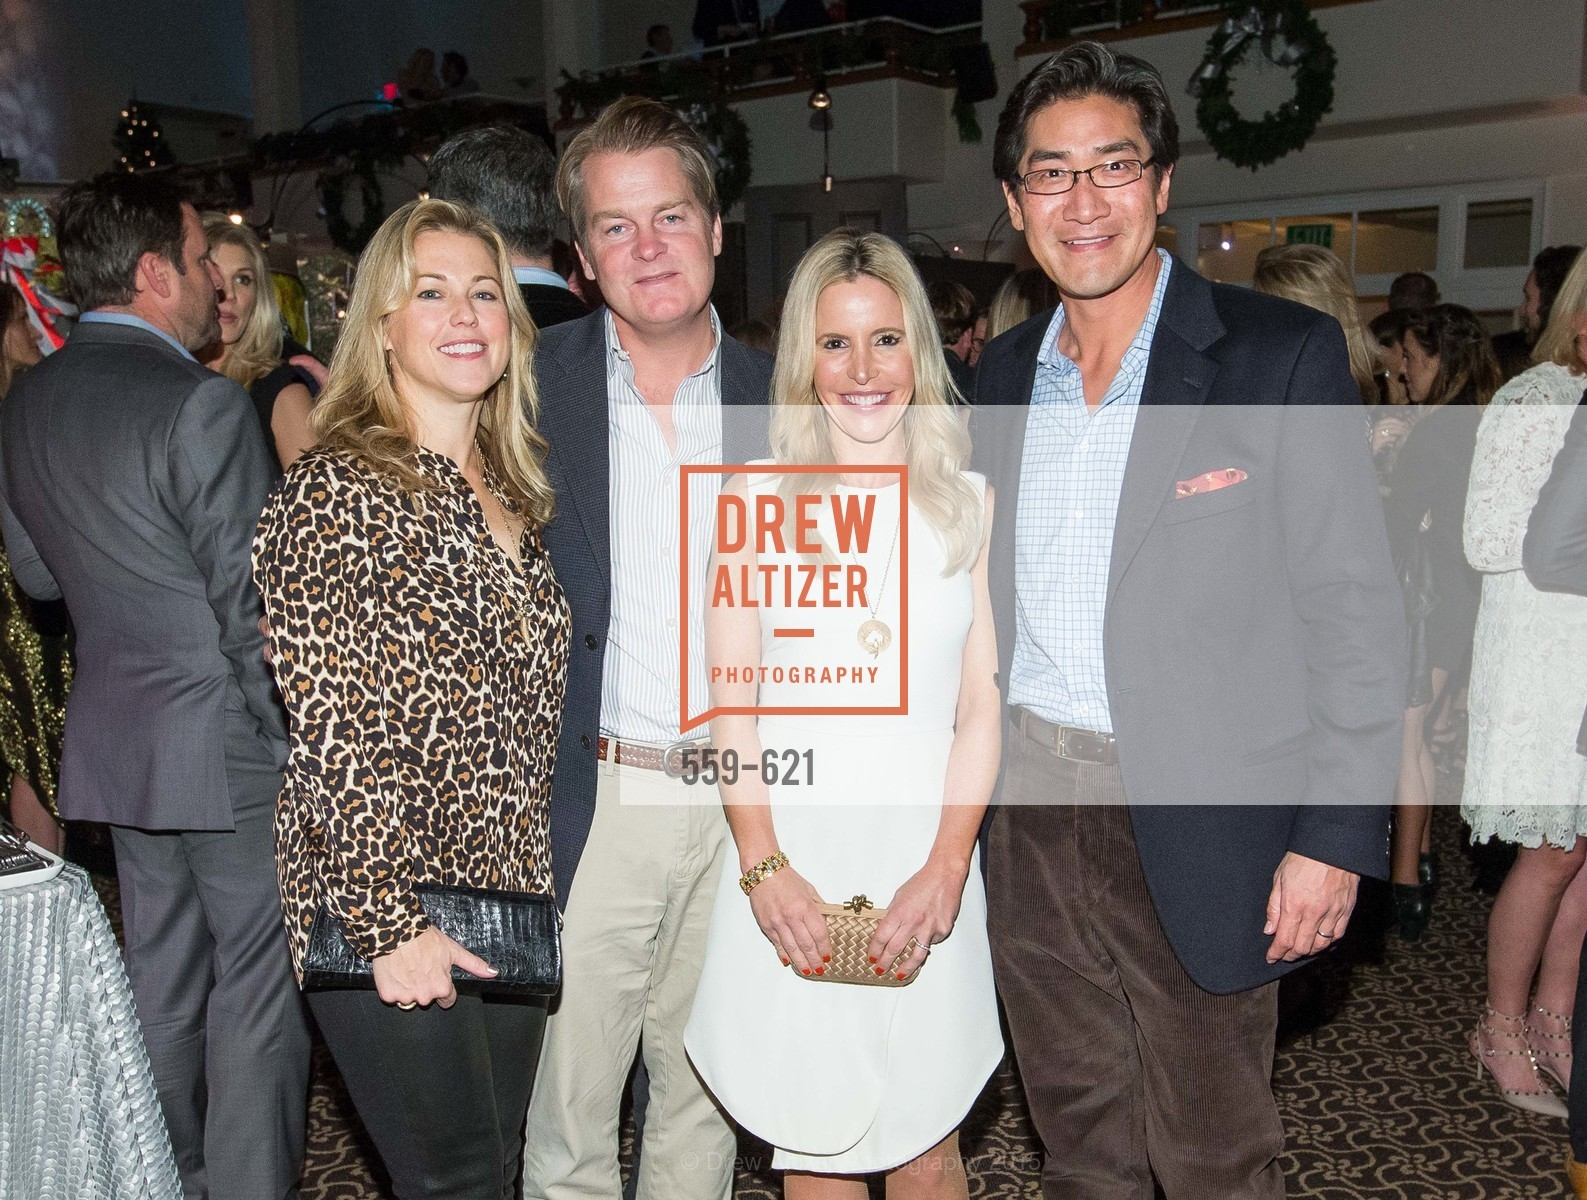 Christina Dunning, Jad Dunning, Lana Adair, David Chung, Children of Shelters' Jingle and Mingle, Golden Gate Club. 135 Fisher Loop, December 3rd, 2015,Drew Altizer, Drew Altizer Photography, full-service agency, private events, San Francisco photographer, photographer california